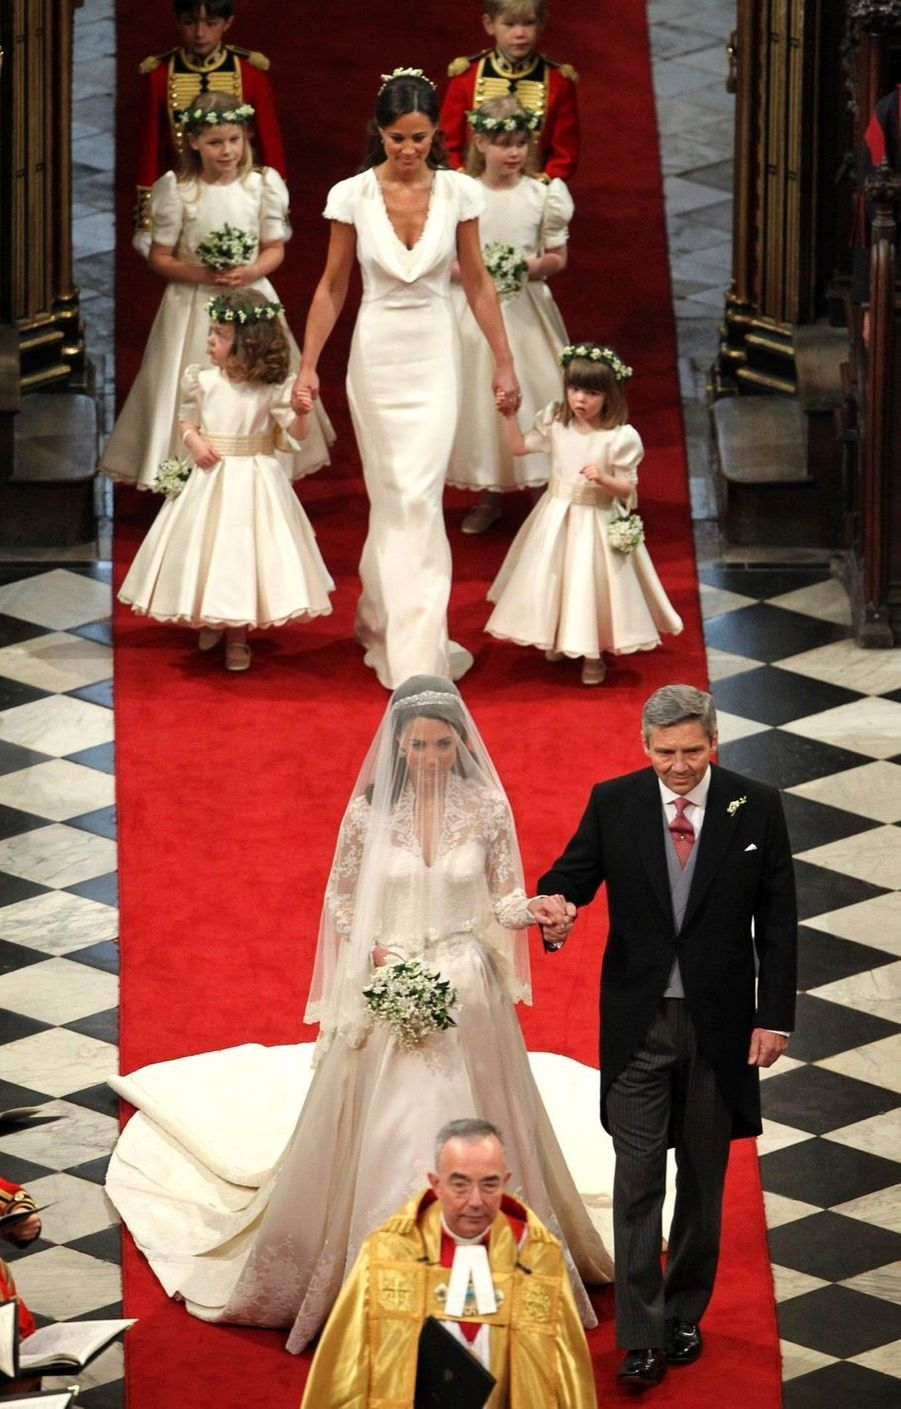 Pippa Middleton Au Mariage De Sa Soeur Kate Middleton Avec Le Prince William, Le 29 Avril 2011 À Londres 21